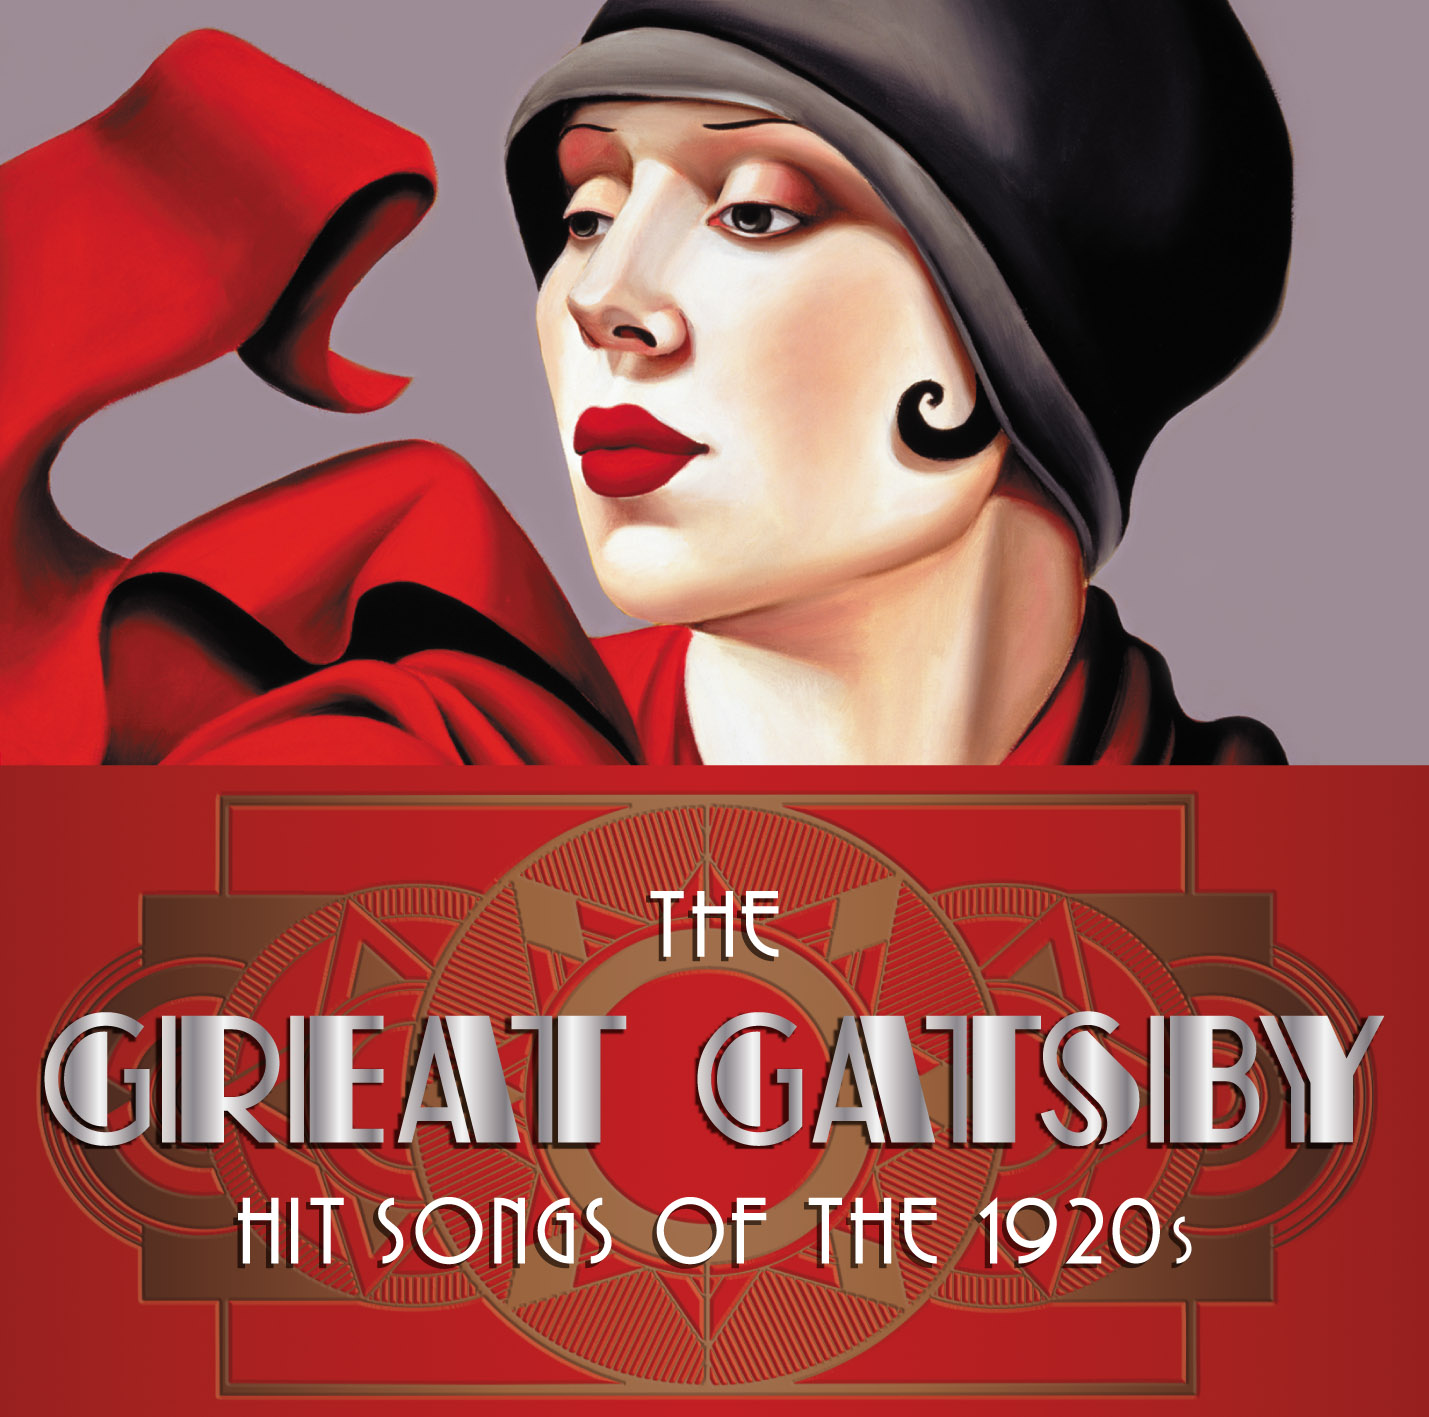 ABC Music | The Great Gatsby: Hit Songs of the 1920s